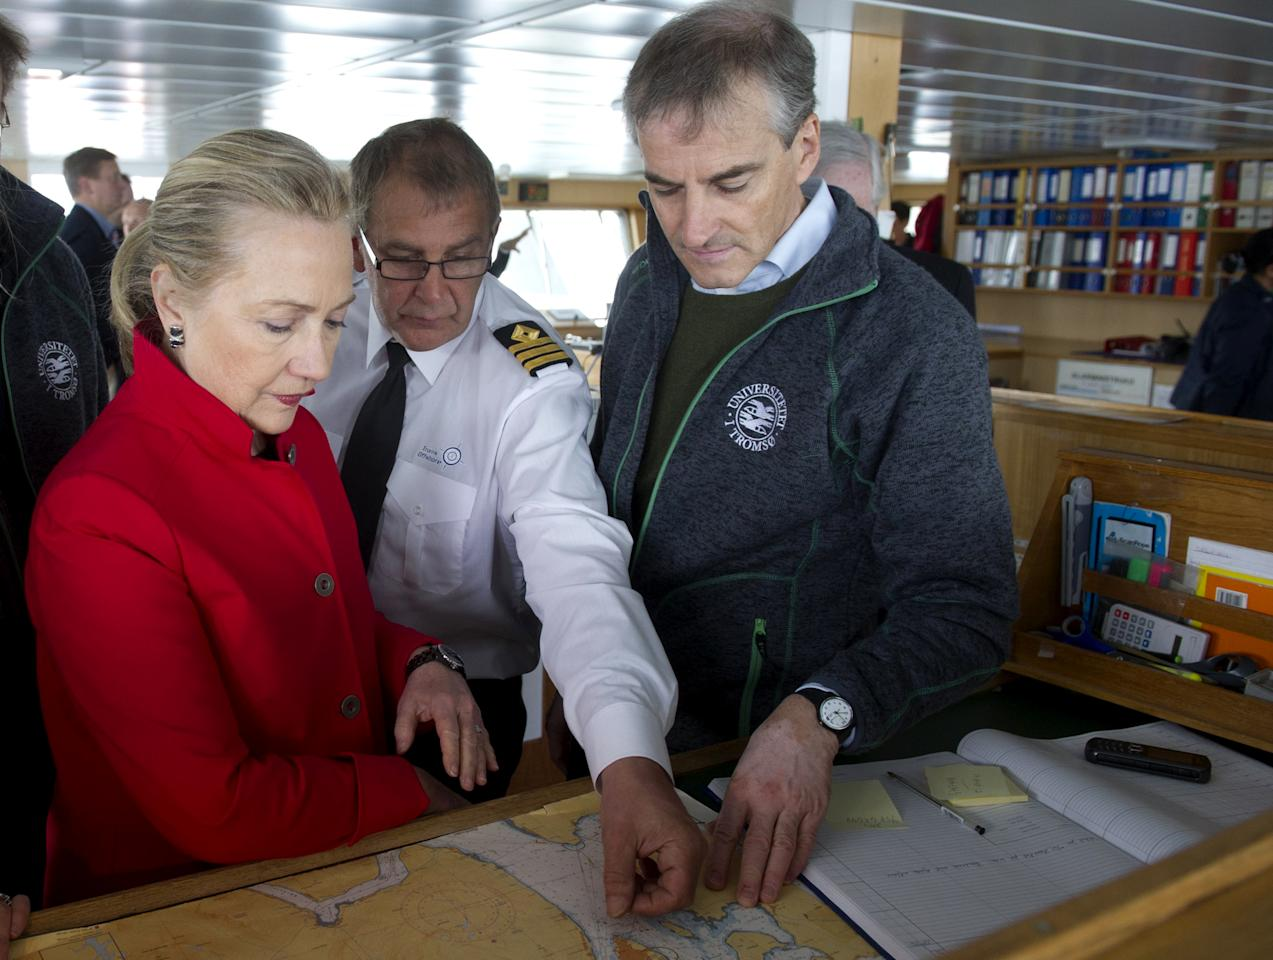 US Secretary of State Hillary Rodham Clinton, left, and Norway's Minister of Foreign Affairs Jonas Gahr Stoere, right, look at a map with First Officer Inge Einar Berg, center, aboard the Arctic Research Vessel Helmer Hanssen during a boat tour of the coastline, off the coast of Tromso, Norway, Saturday June 2, 2012. (AP Photo/Saul Loeb, Pool)